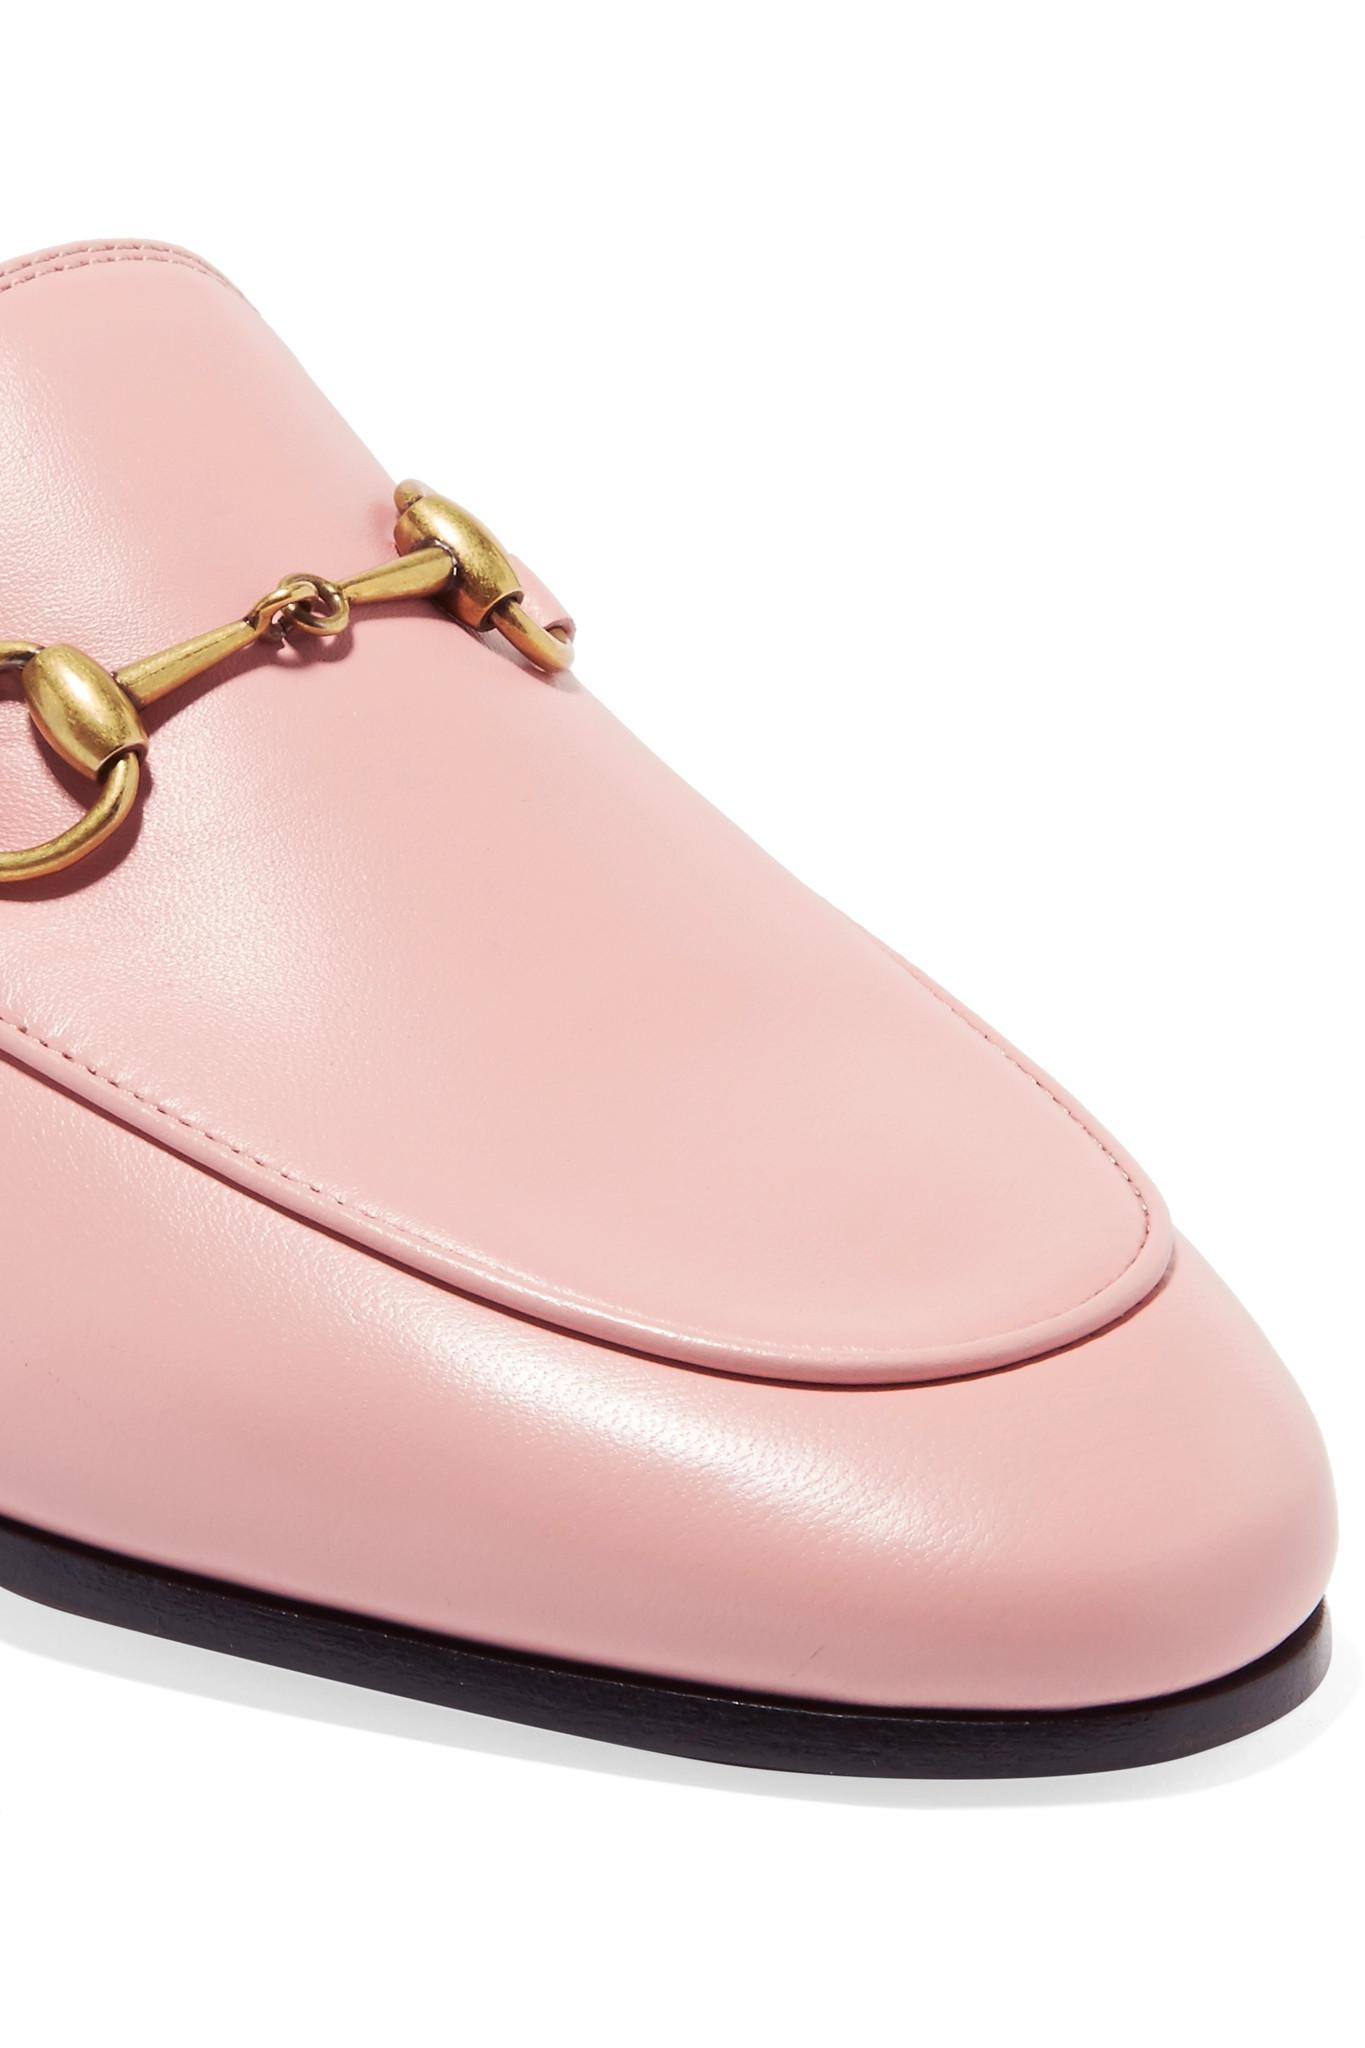 07d98b99bf6 Gucci - Pink Brixton Leather Loafers - Lyst. View fullscreen